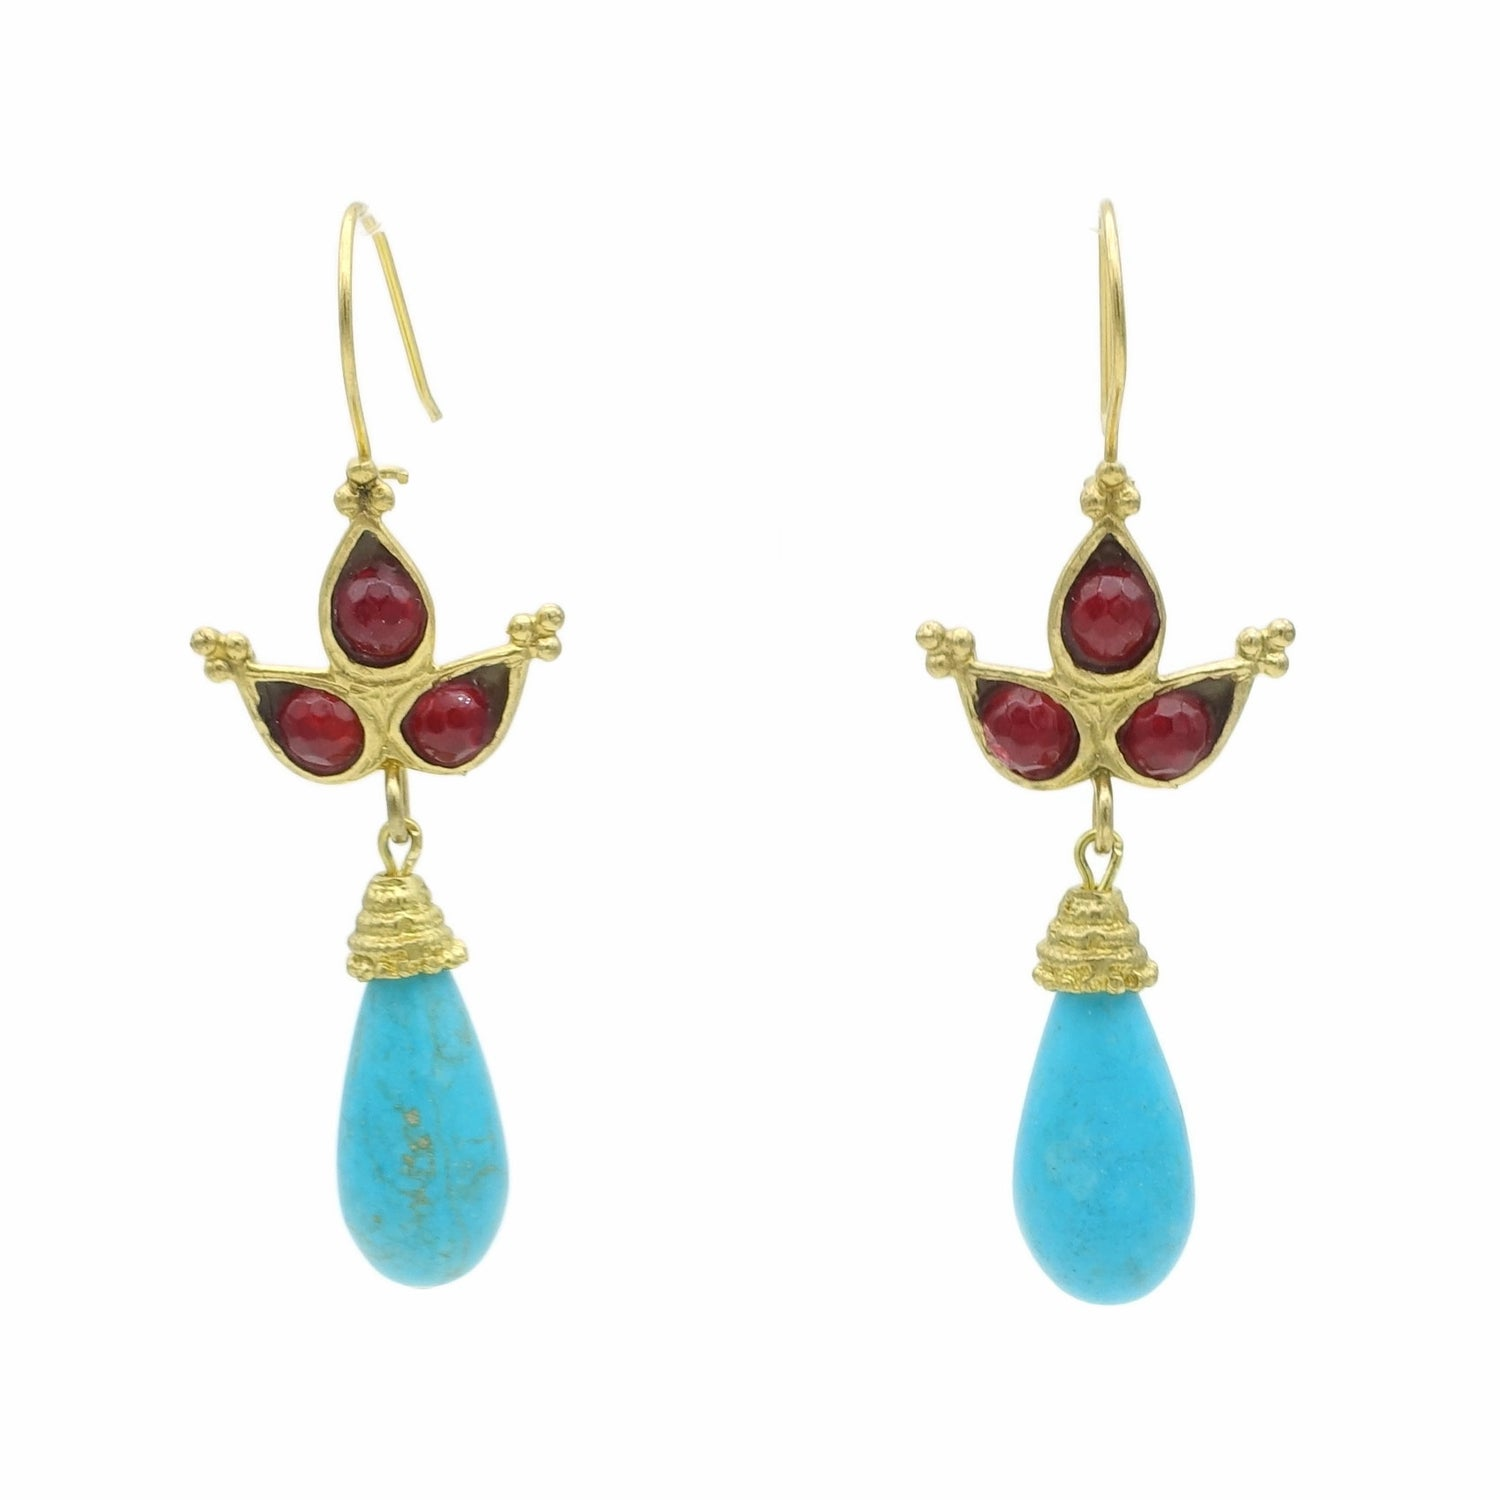 Aylas Turquoise Agate earrings - 21ct Gold plated semi precious gemstone - Handmade